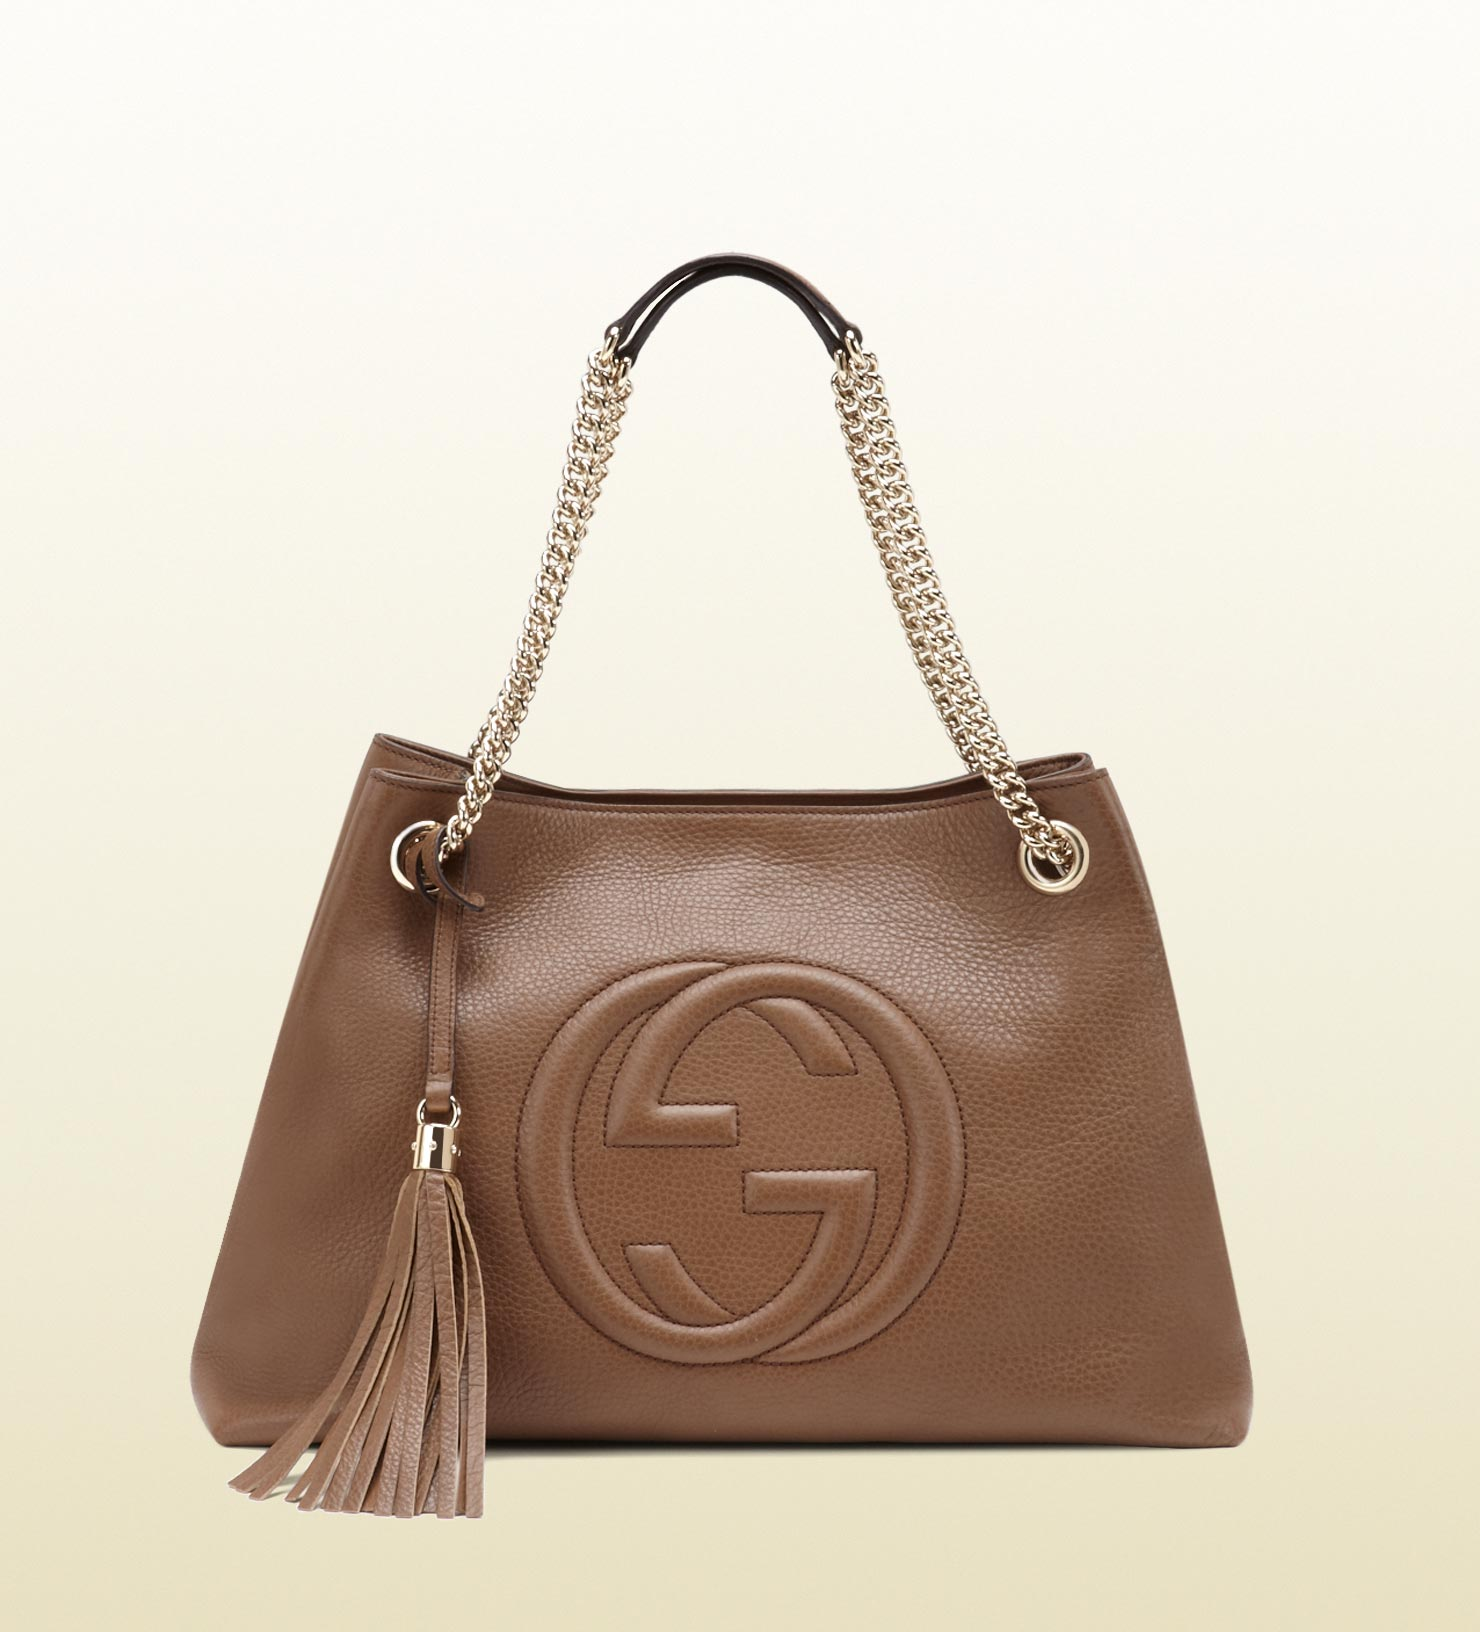 gucci soho leather shoulder bag in brown lyst. Black Bedroom Furniture Sets. Home Design Ideas